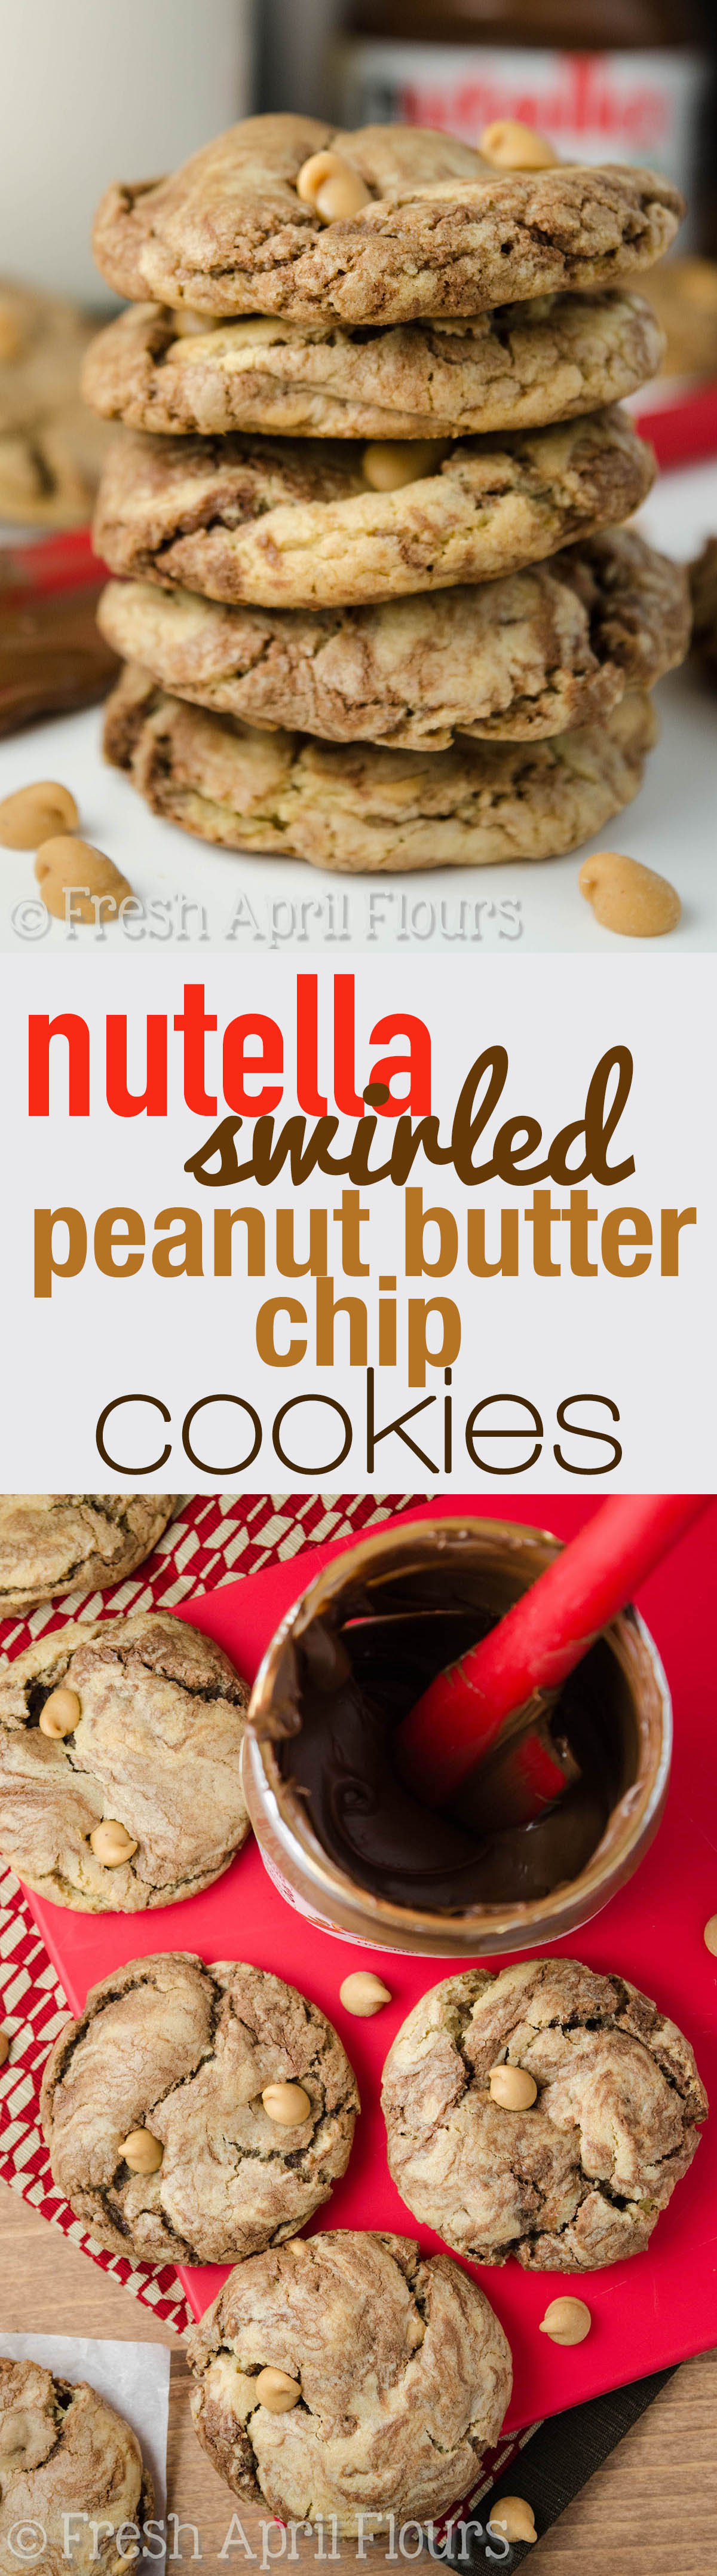 Nutella Swirled Peanut Butter Chip Cookies: Easy brown sugar cookies filled with peanut butter chips and generous swirls of Nutella.